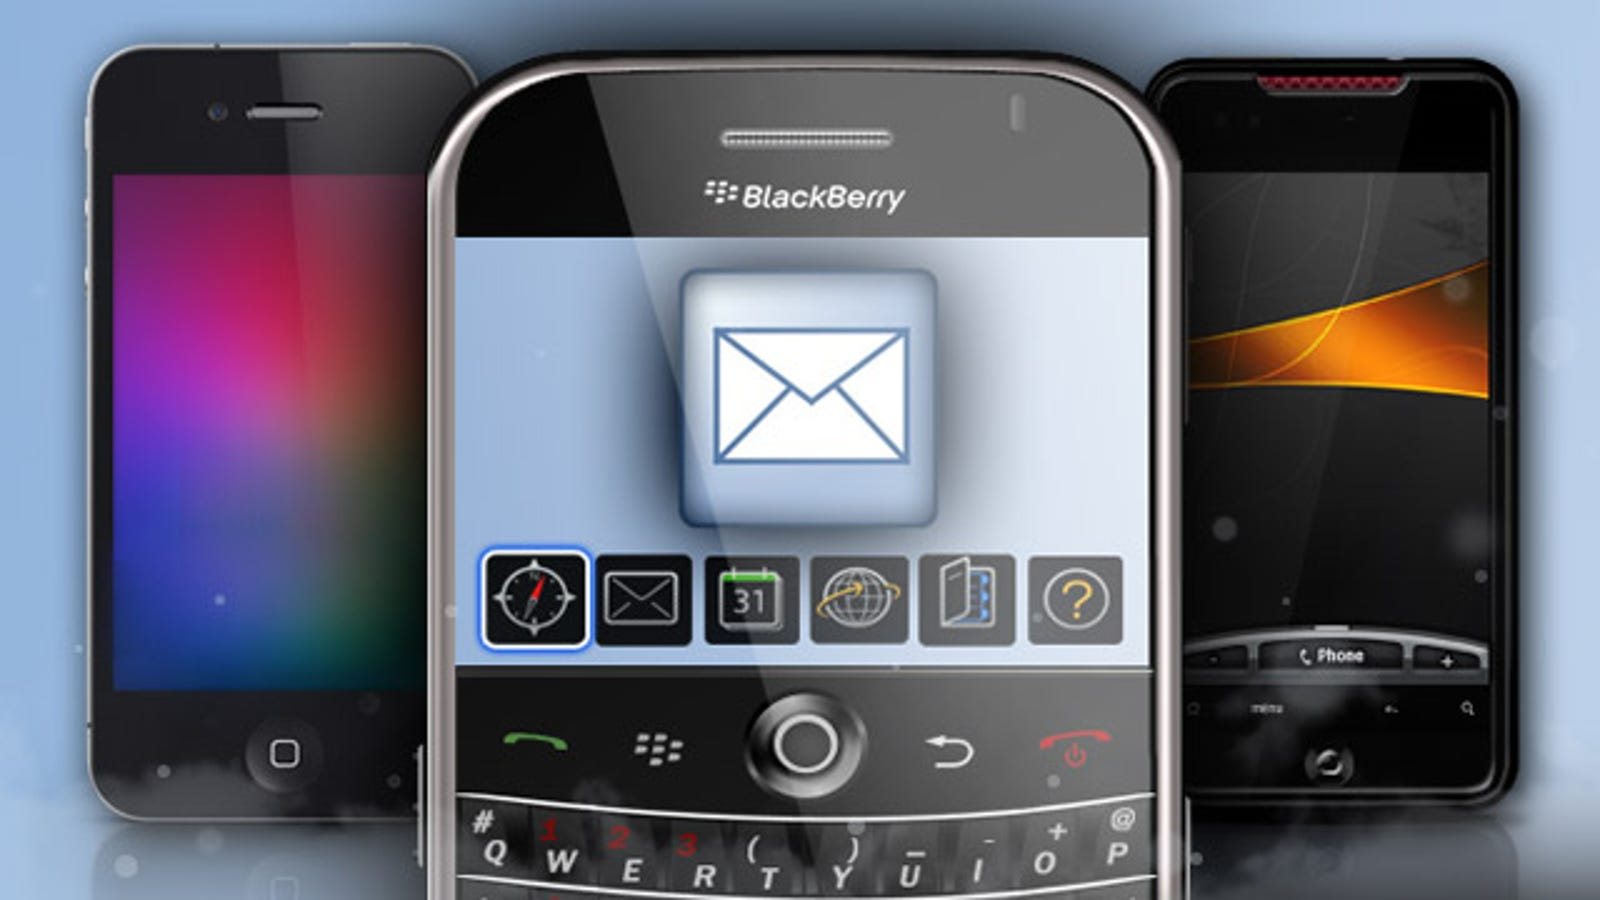 How to Bring BlackBerry's Best Email Features to iPhone or